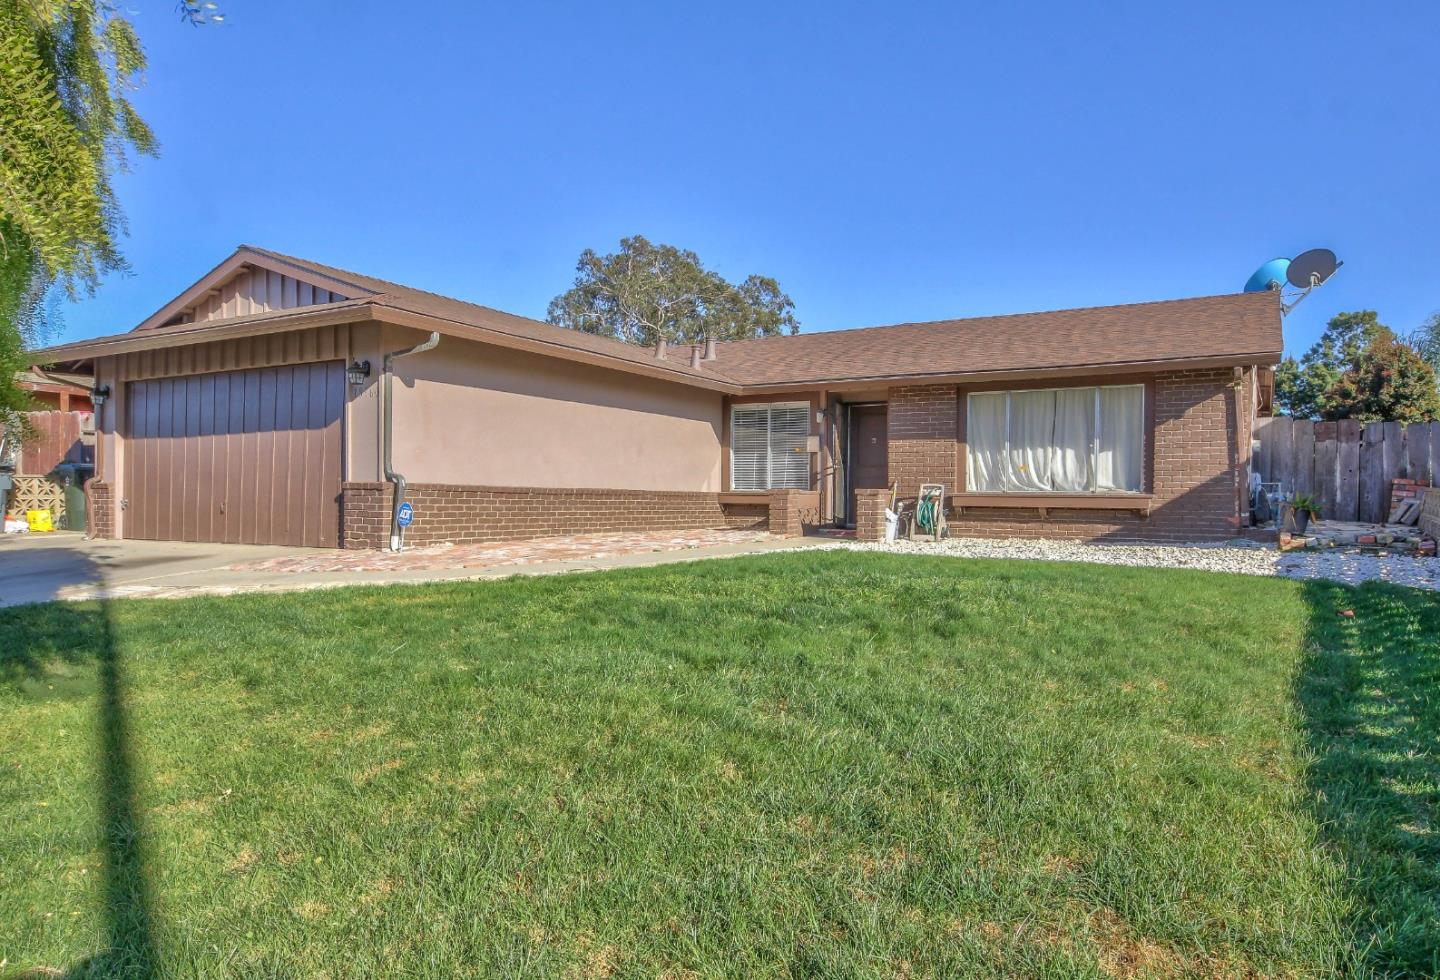 Detail Gallery Image 1 of 18 For 18960 Souza Way, Salinas, CA 93906 - 3 Beds | 2 Baths